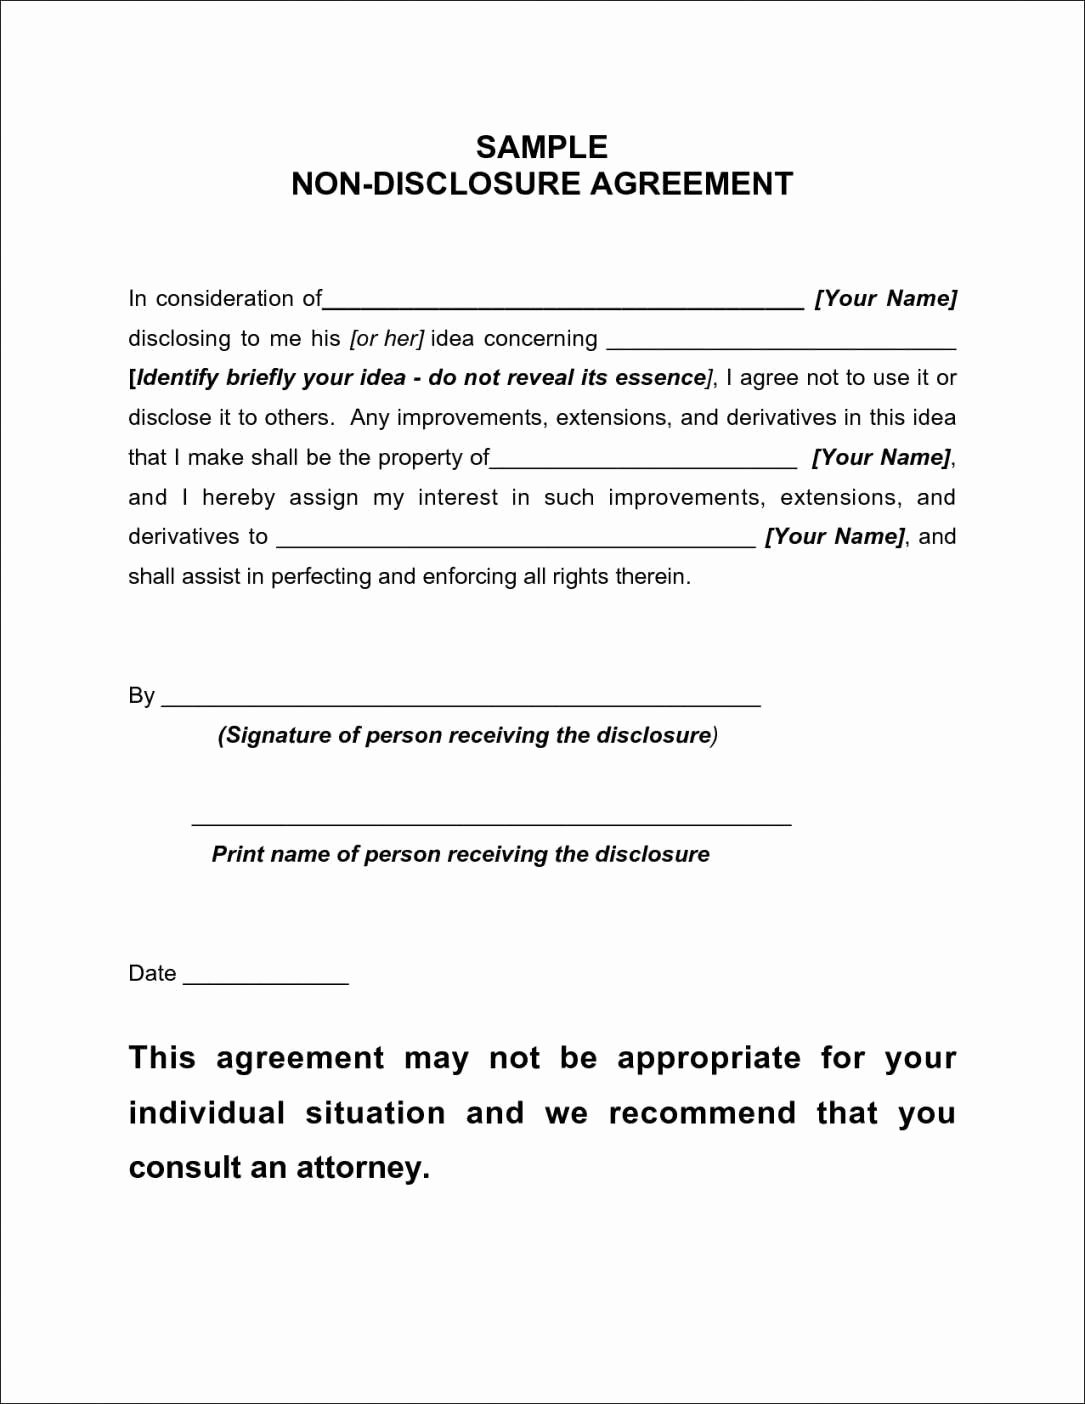 Word Employee Confidentiality Agreement Templates Inspirational Employee Non Disclosure and Confidentiality Agreement